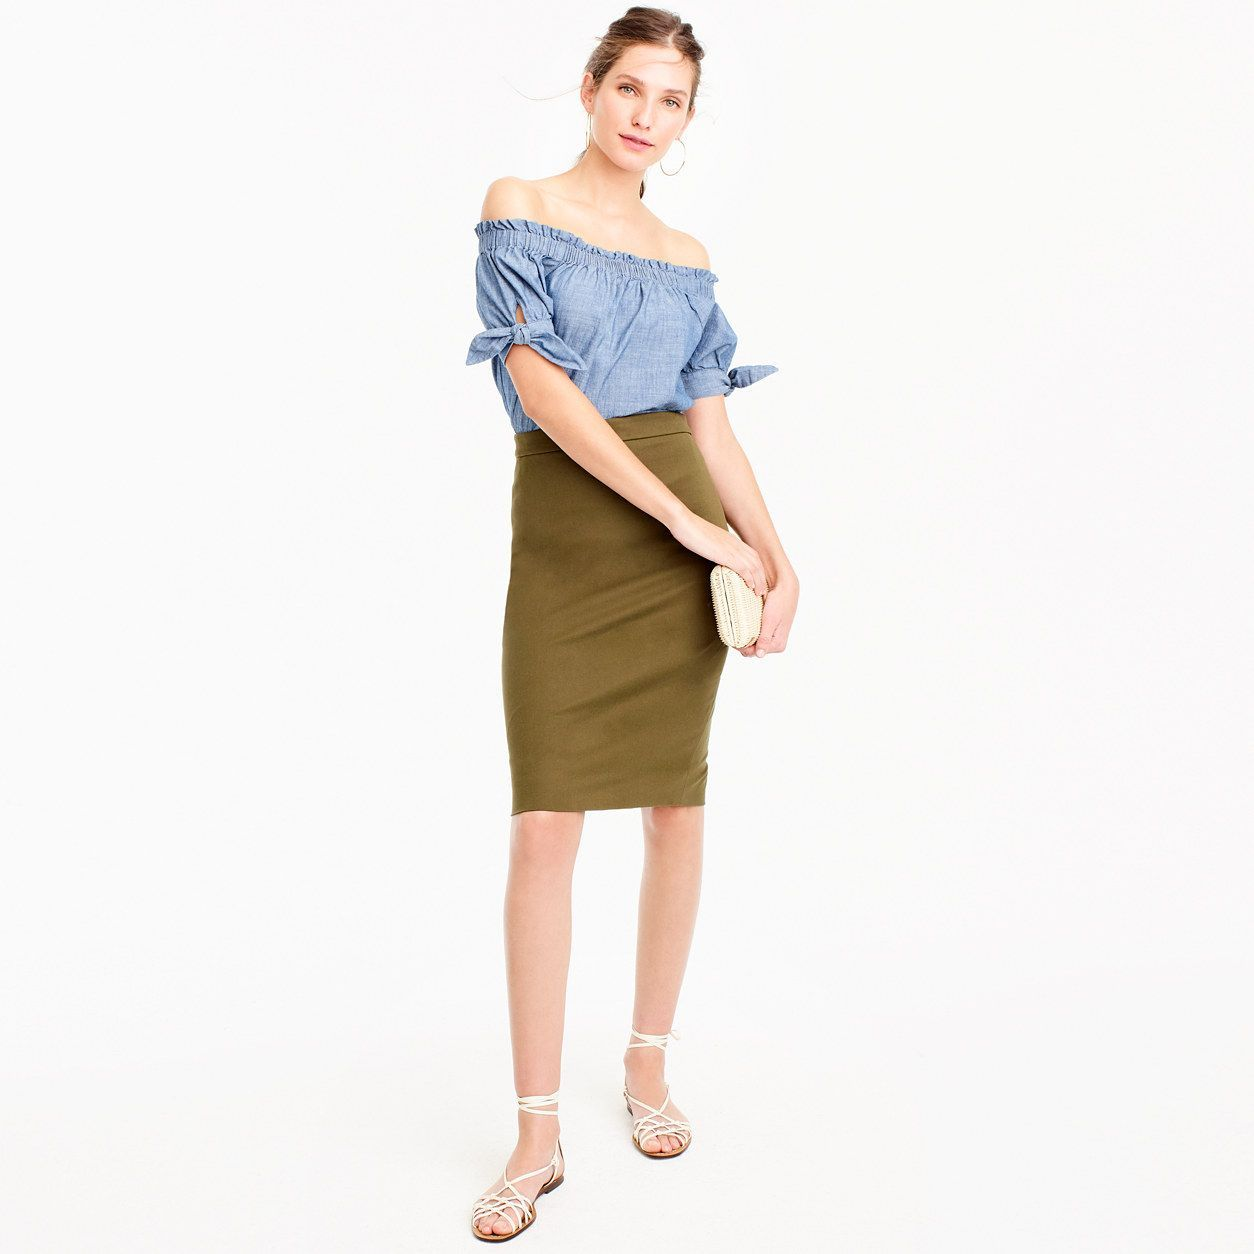 fa013e77fece J.Crew Womens Petite No. 2 Pencil Skirt In Two-Way Stretch Cotton (Size 12  Petite)